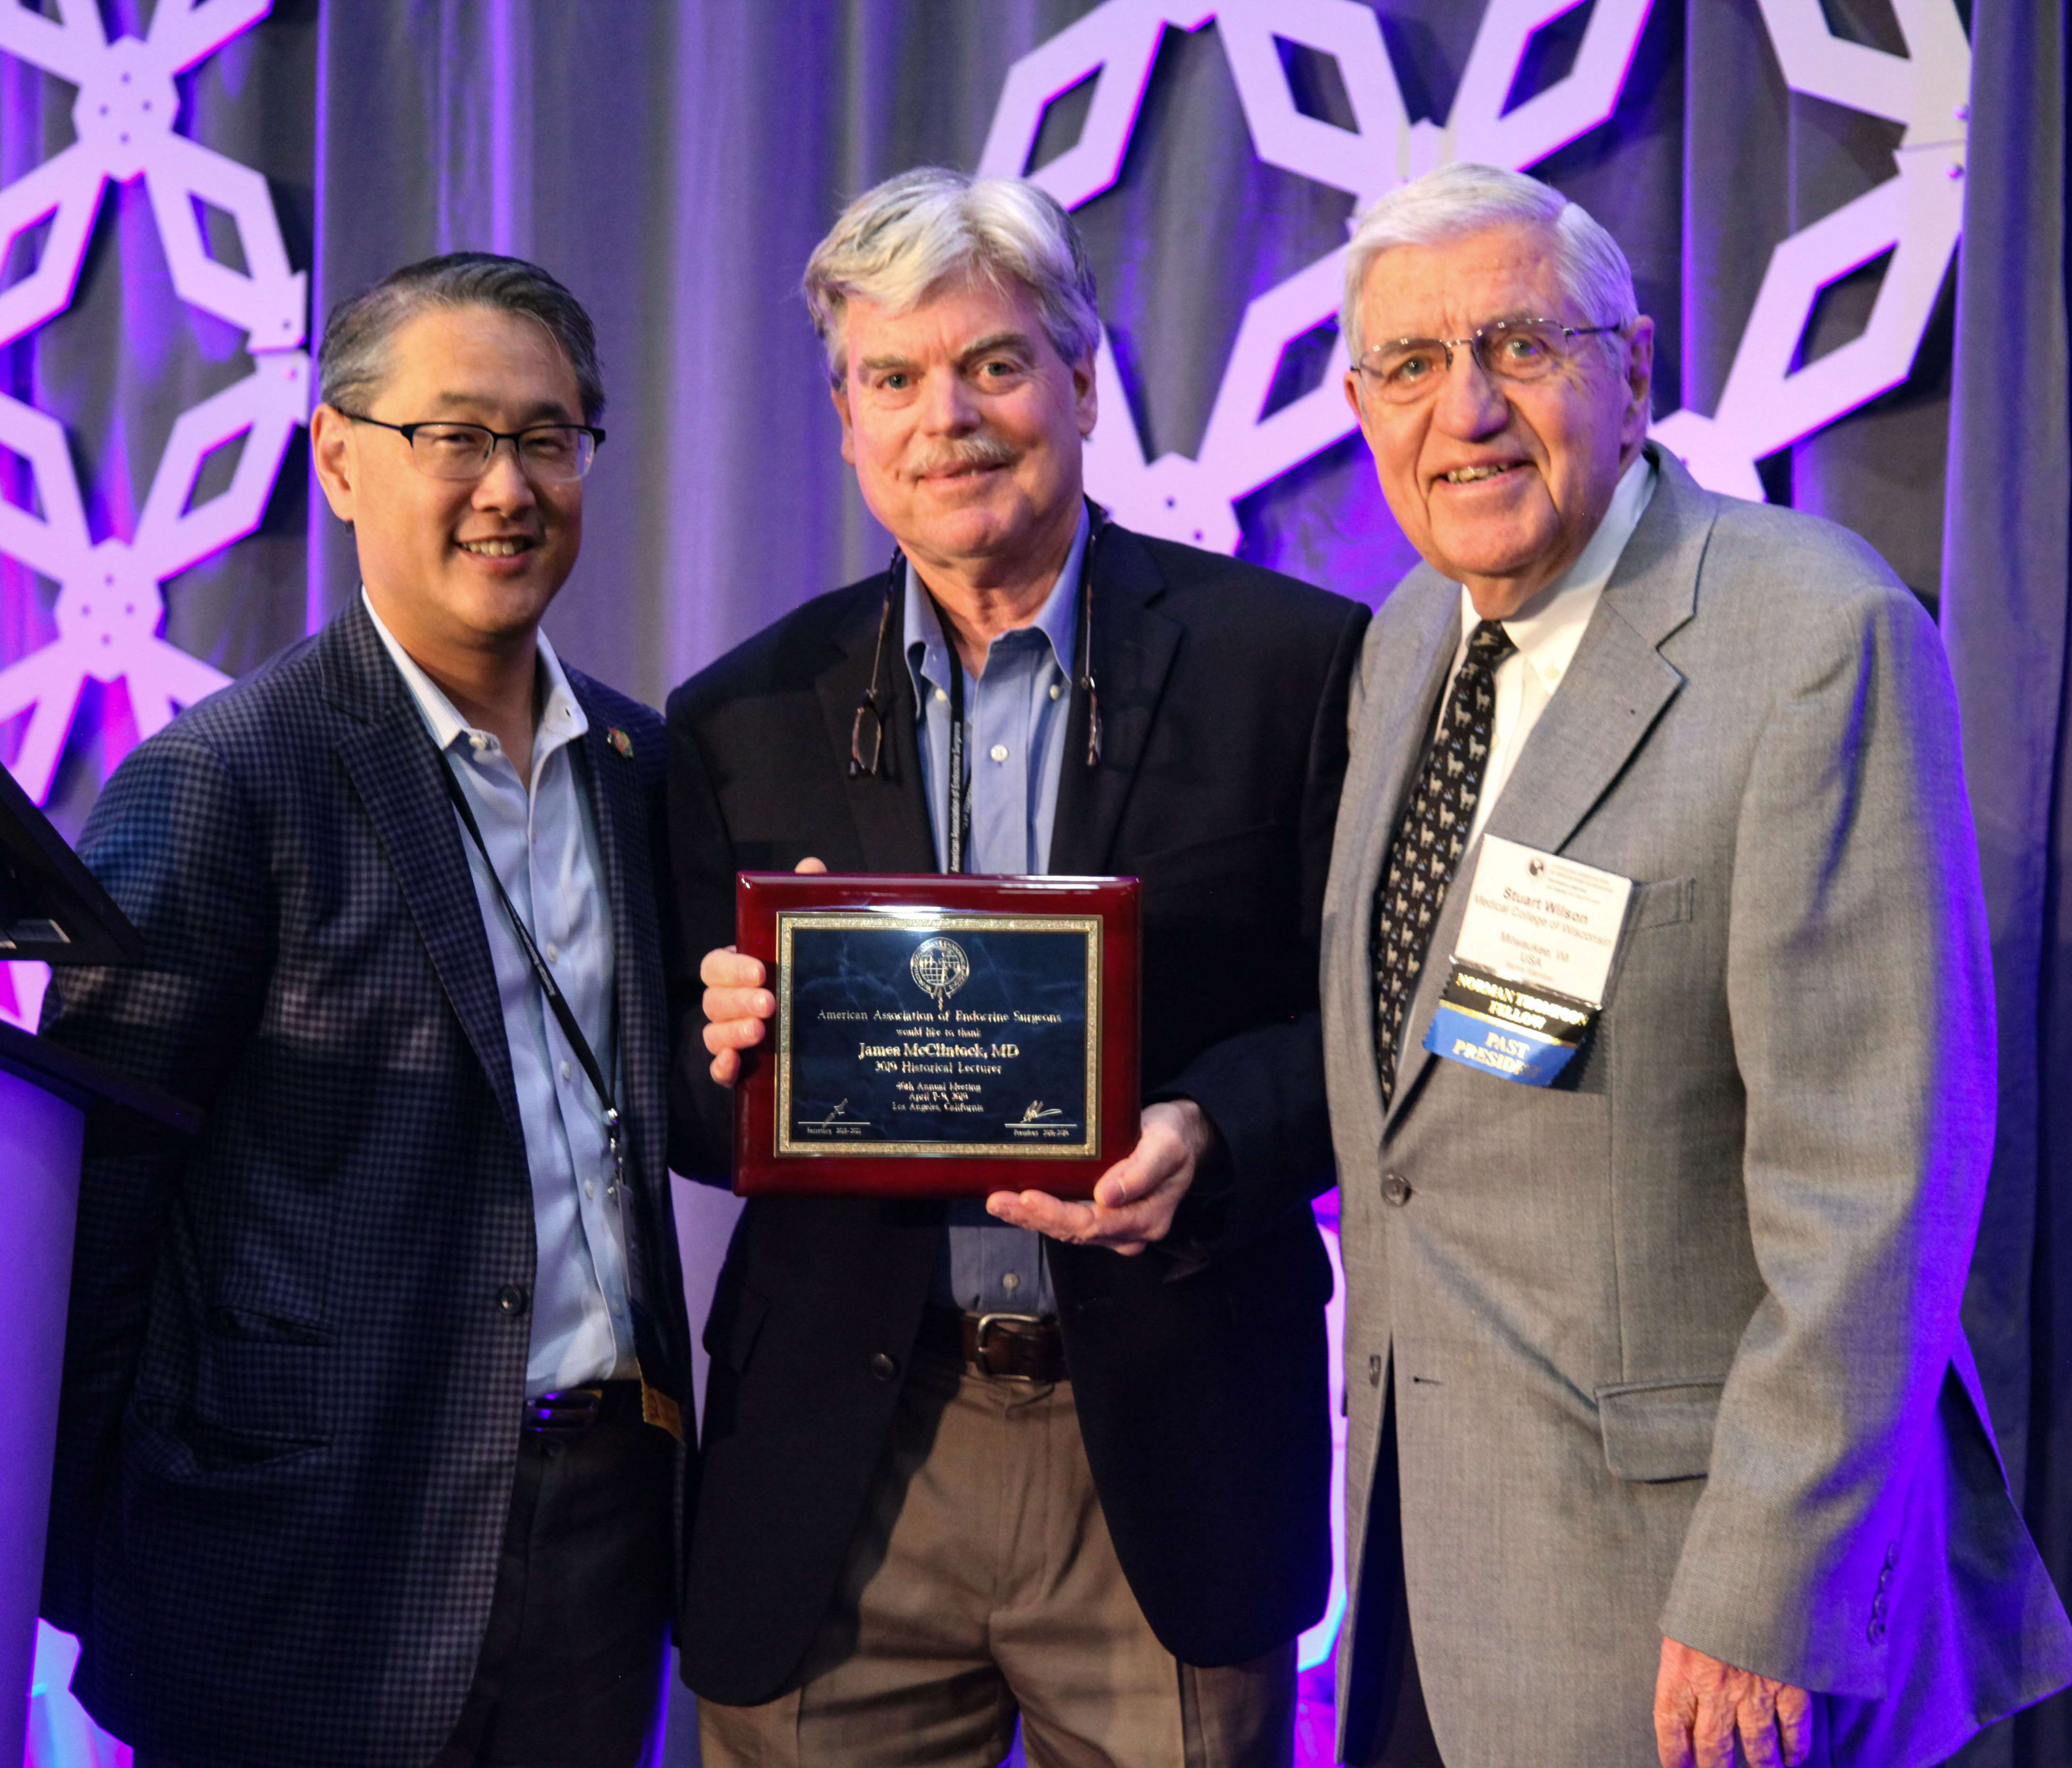 Drs. Chen, McClintock and Wilson at 2019 AAES Conference